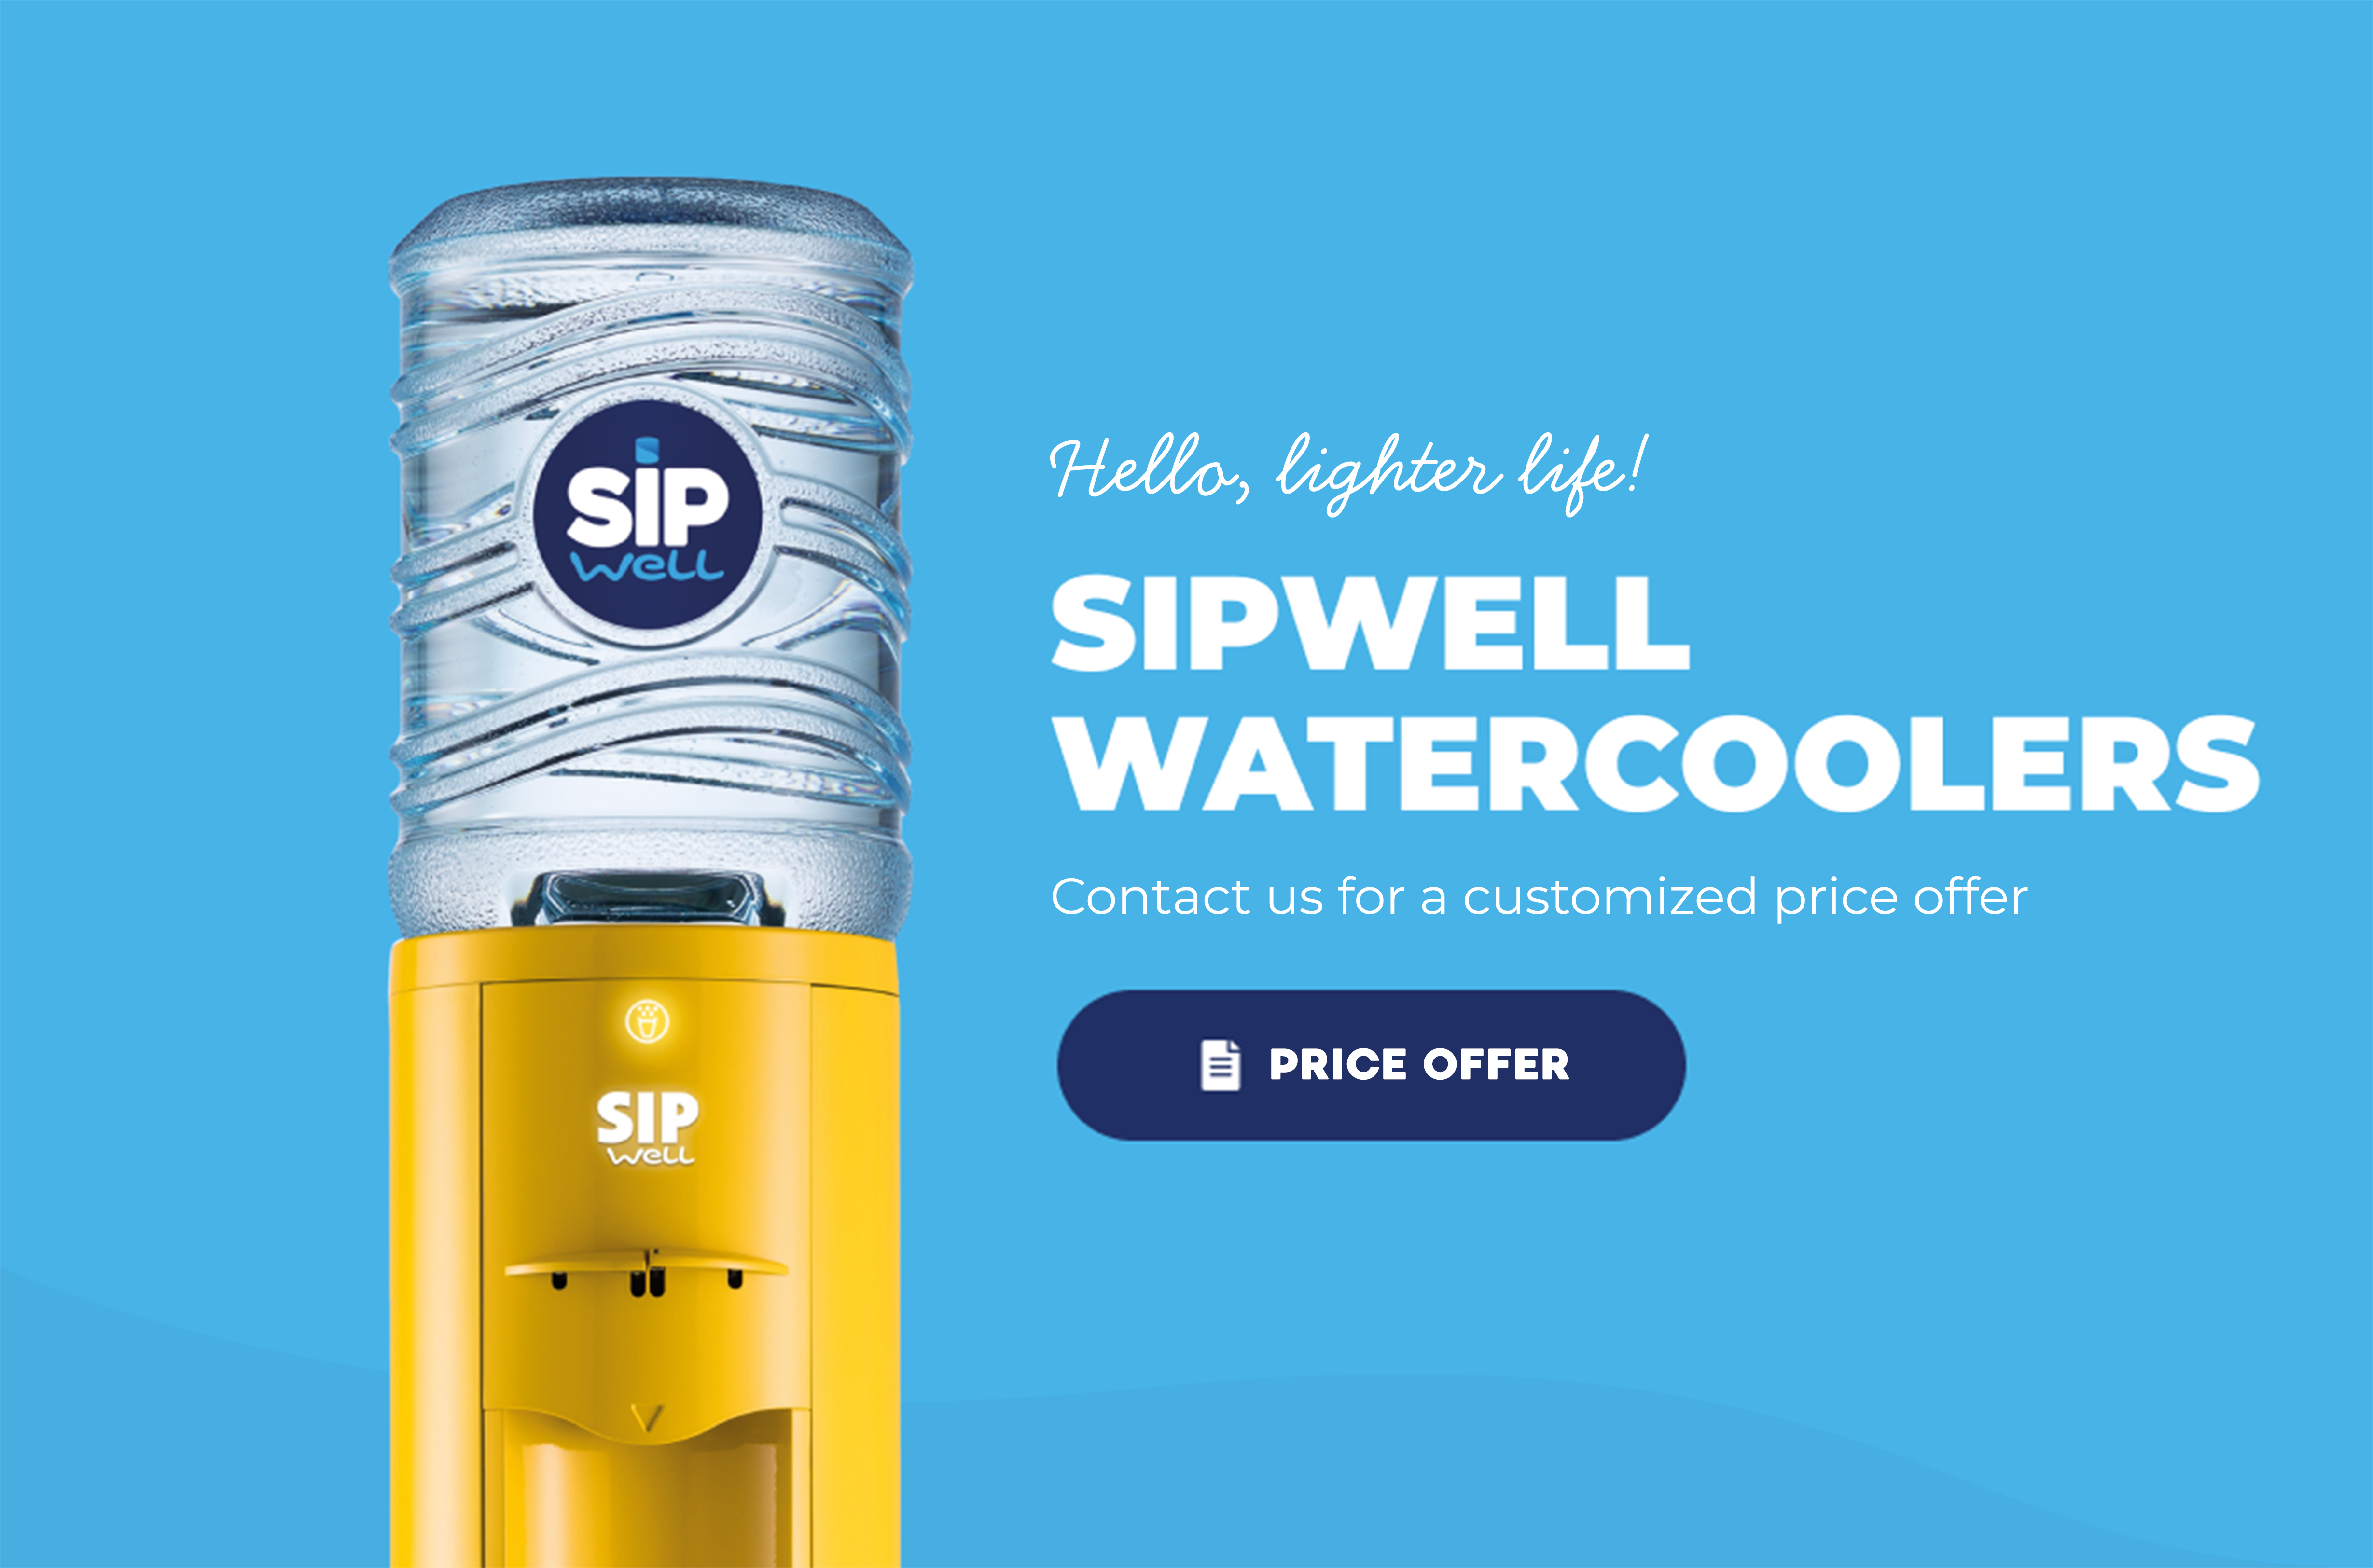 SipWell water coolers